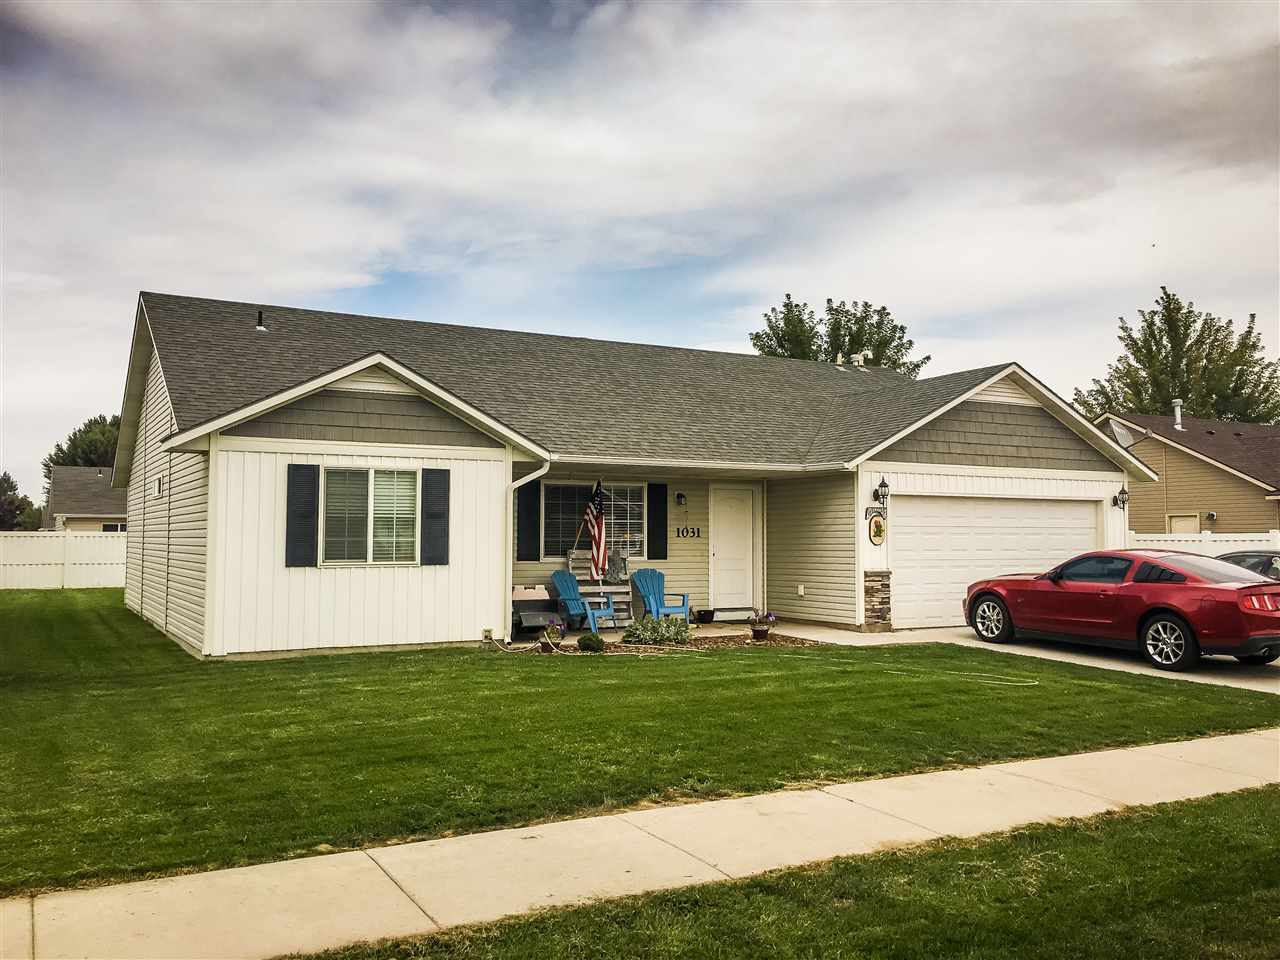 1031 NW 22nd St, Fruitland, ID 83619